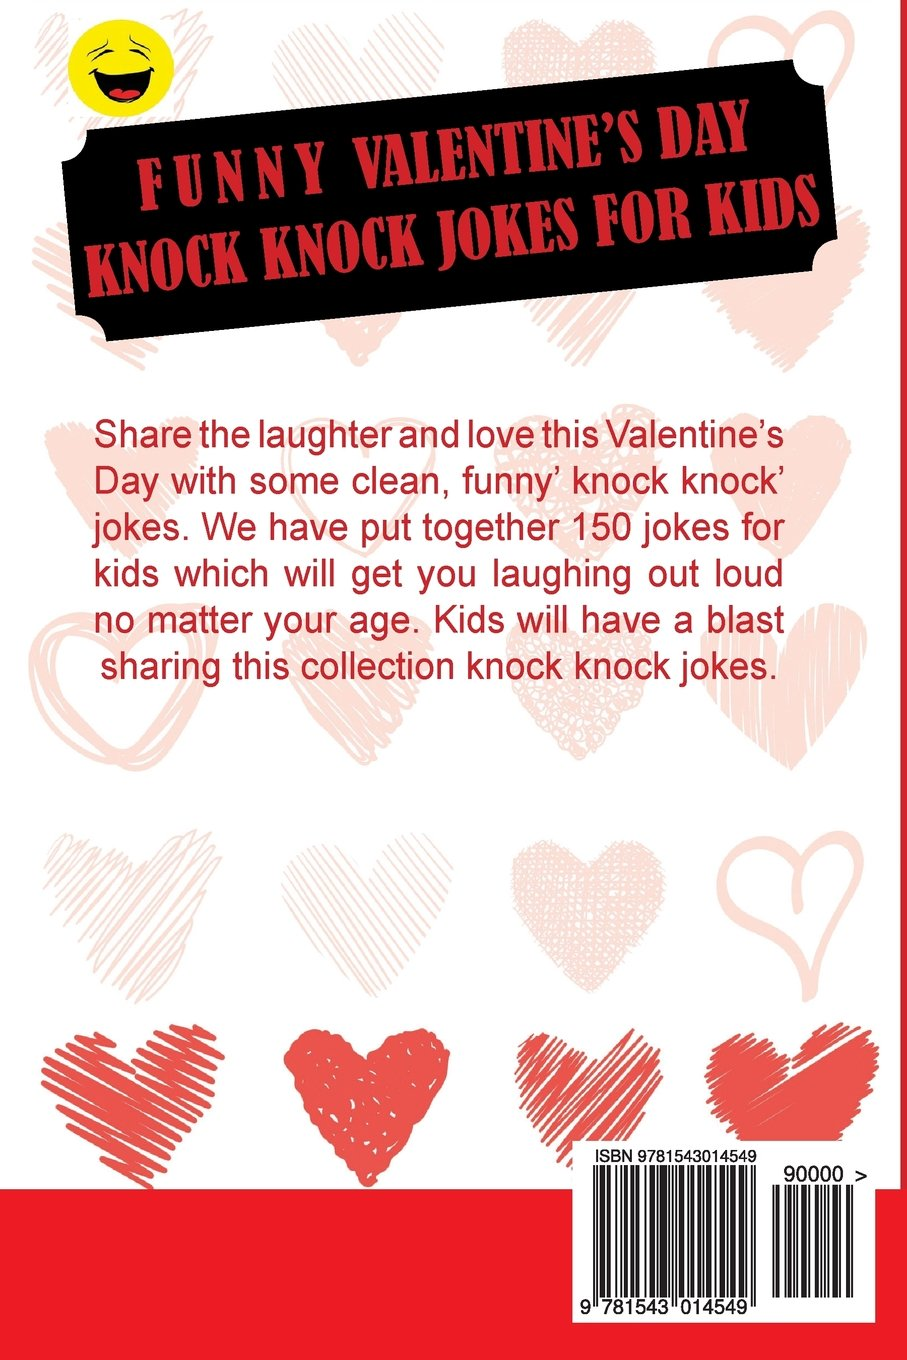 funny valentines knock knock jokes for kids 150 valentines day jokes for children i p happy 9781543014549 amazoncom books